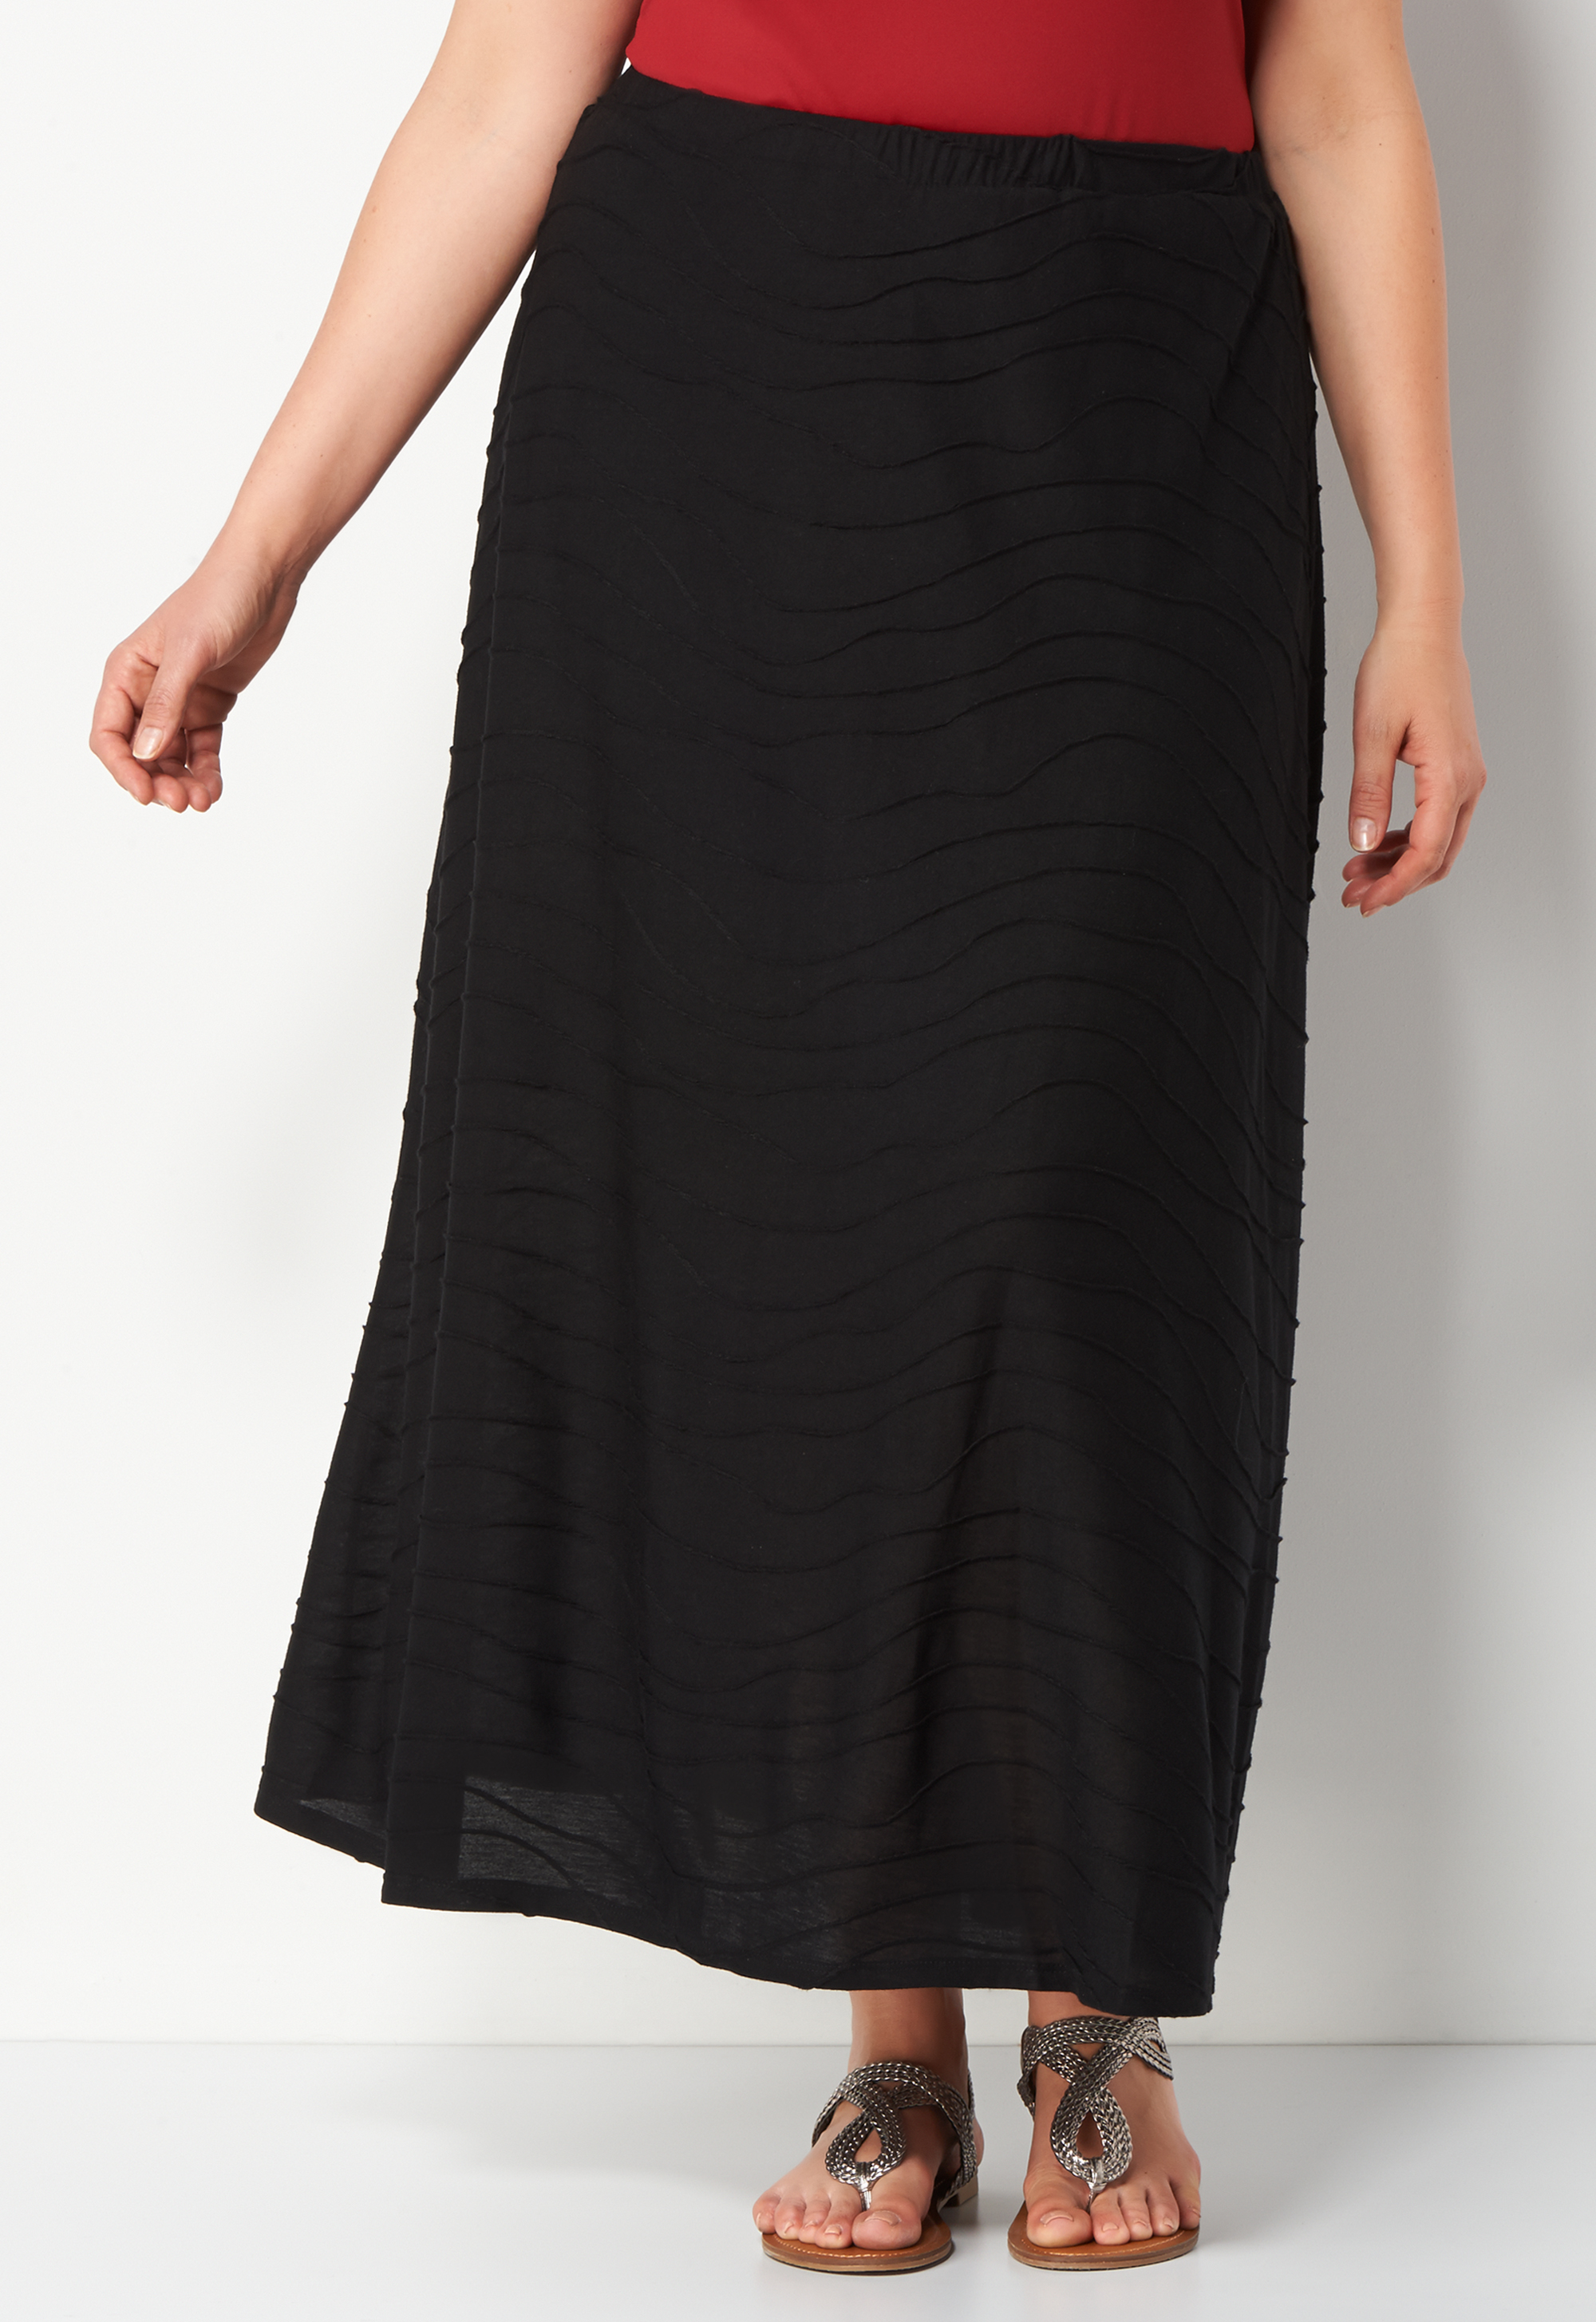 Plus Size Wavy Knit Plus Size Skirt - Black - Christopher & Banks CJ Banks 0036510323